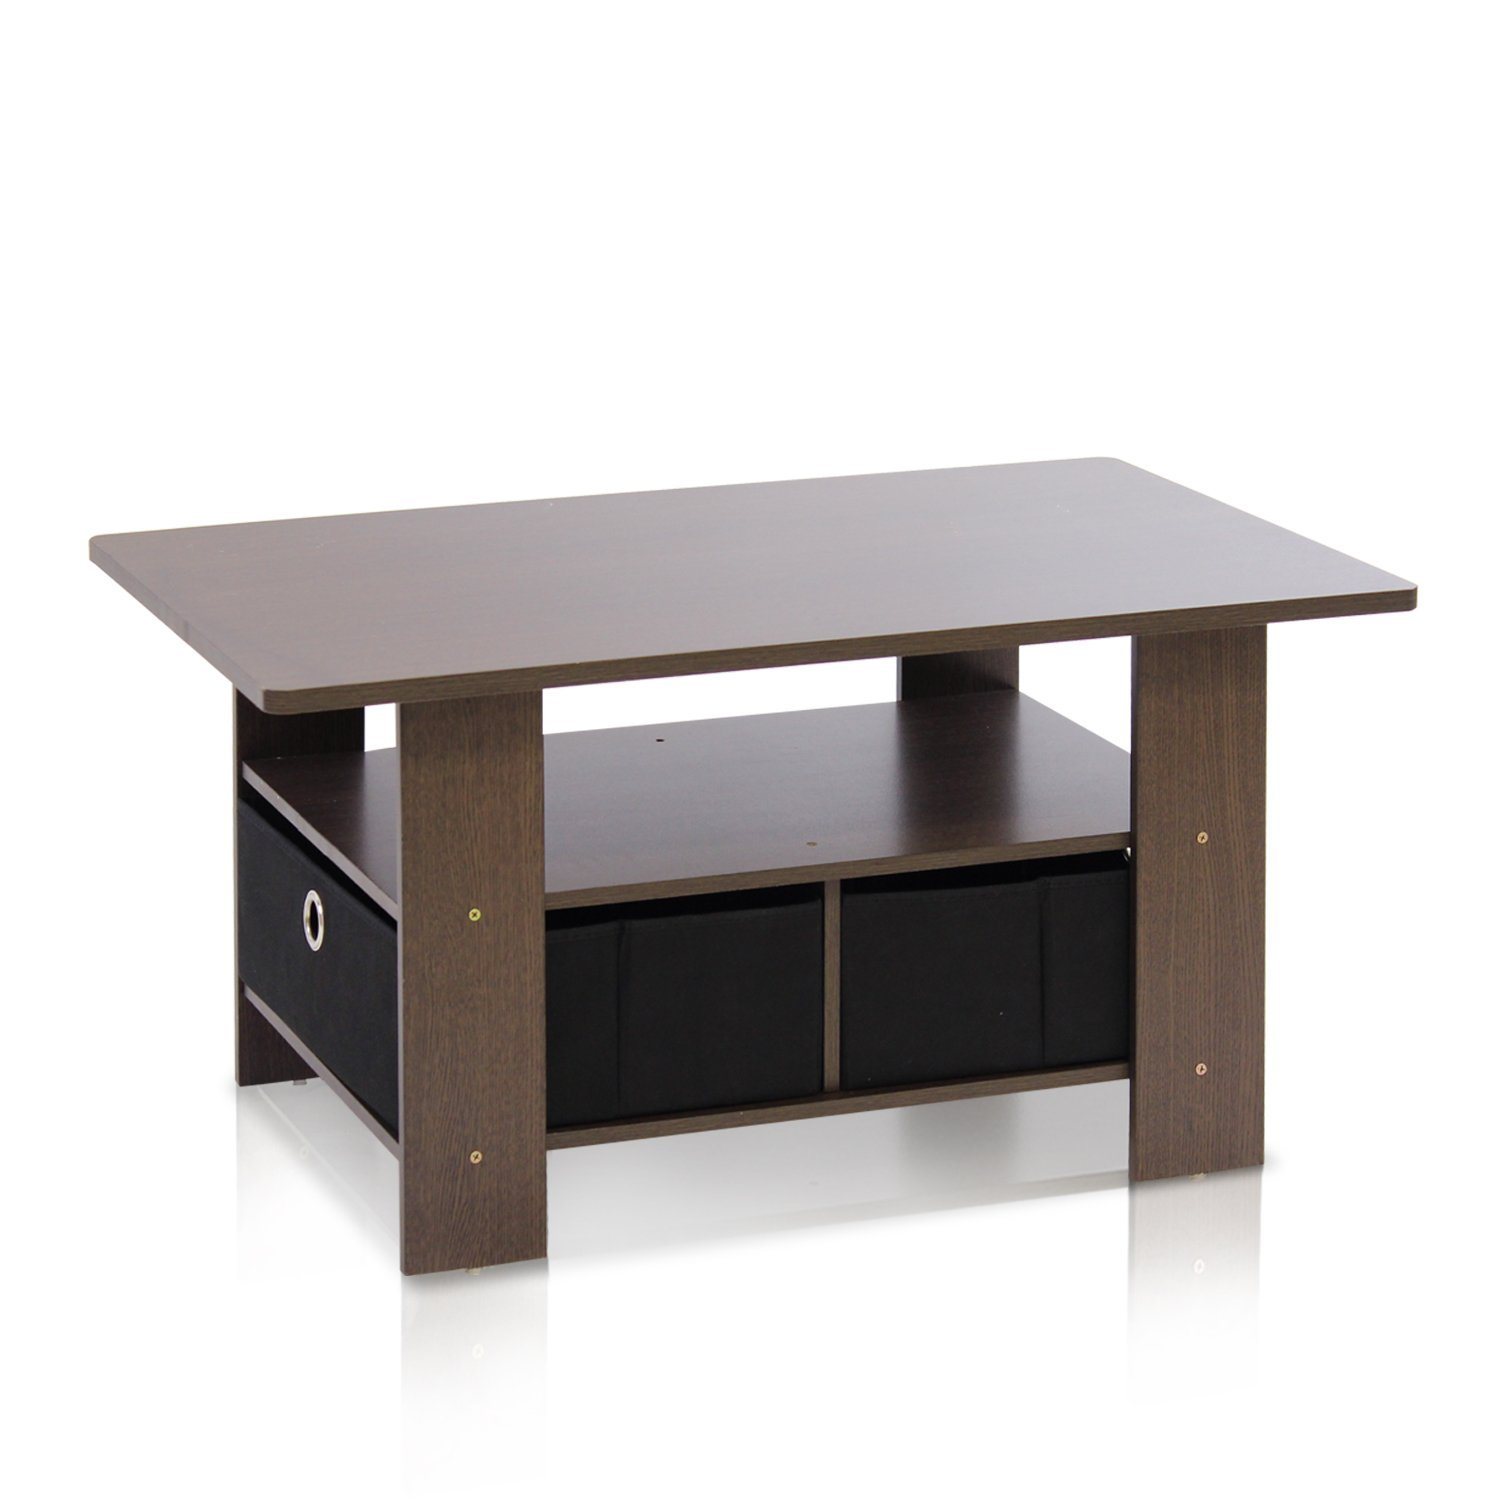 Furinno Coffee Table with Bins For FREE Hot Deals DealsMavencom